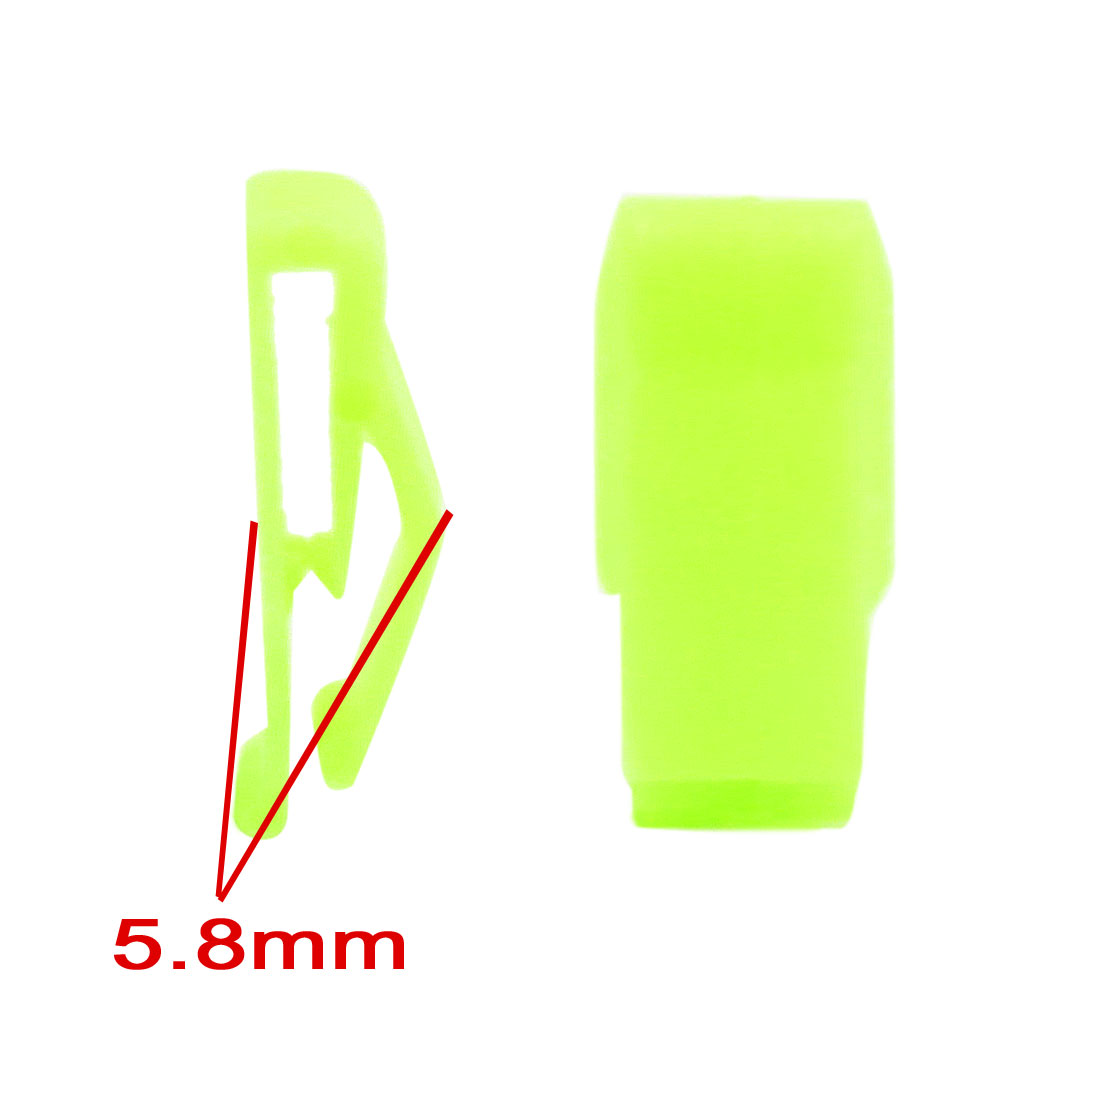 20pcs Green Car Console Plastic Retainer Dashboard Moulding Trim Clip Fastener - image 1 de 2